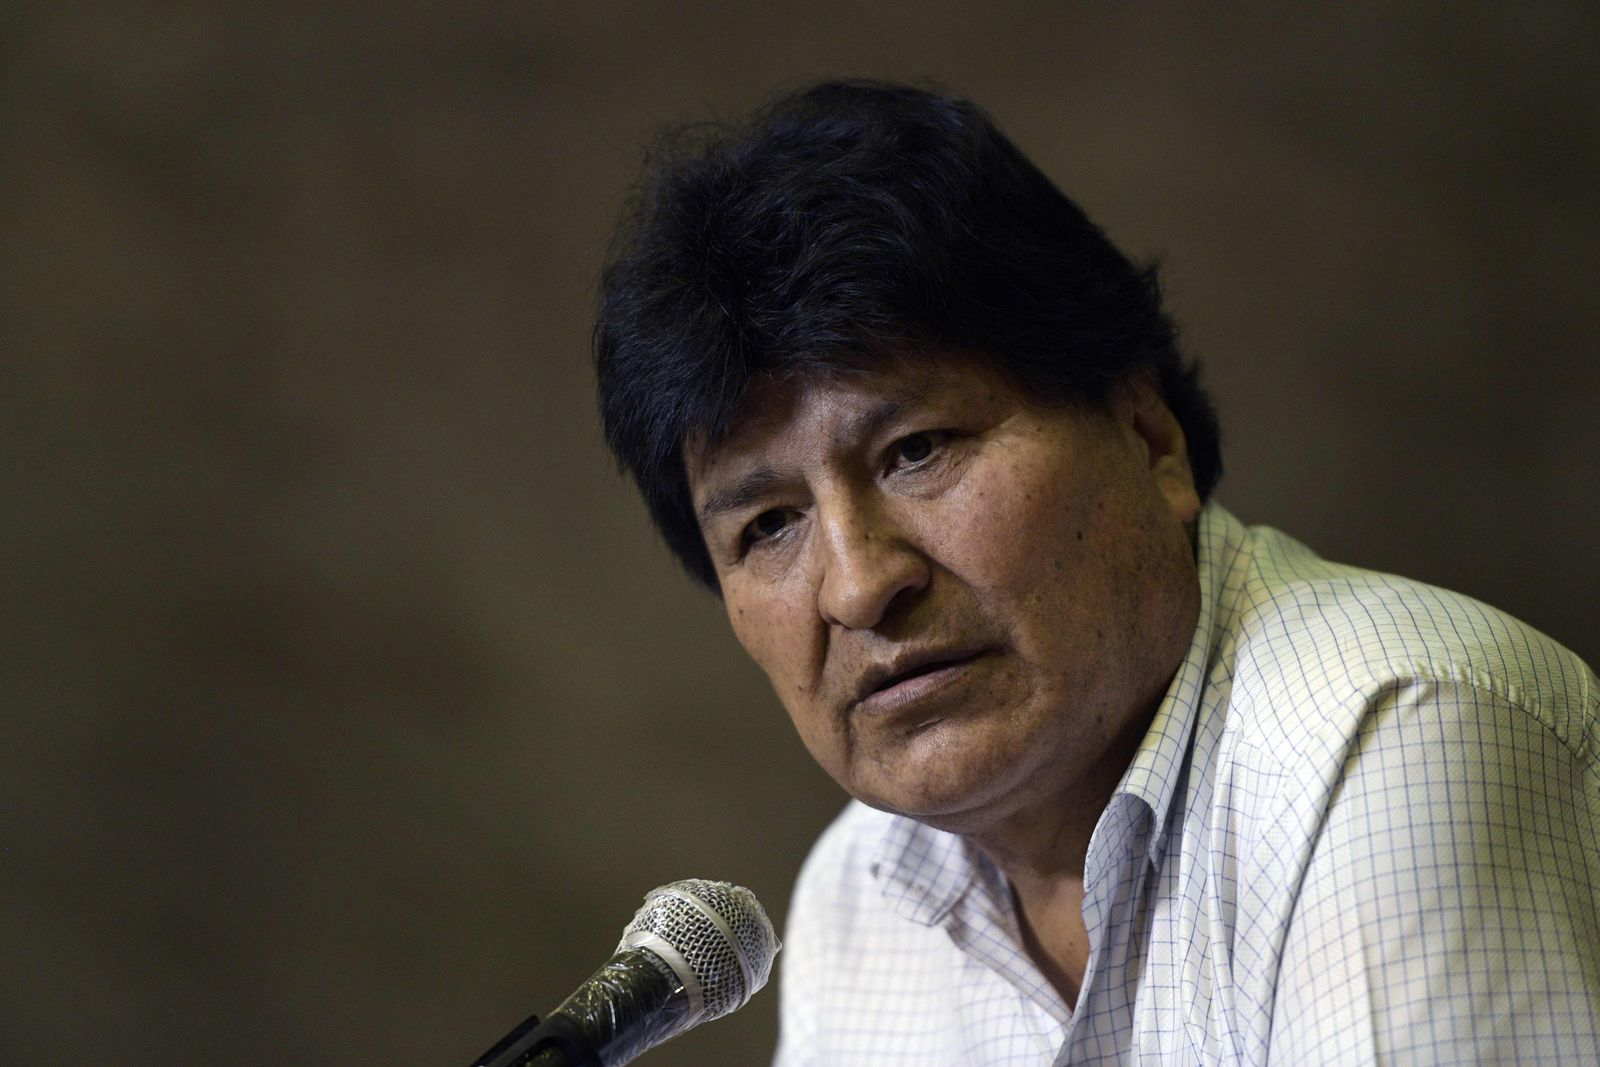 FILES-BOLIVIA-POLITICS-JUSTICE-MORALES